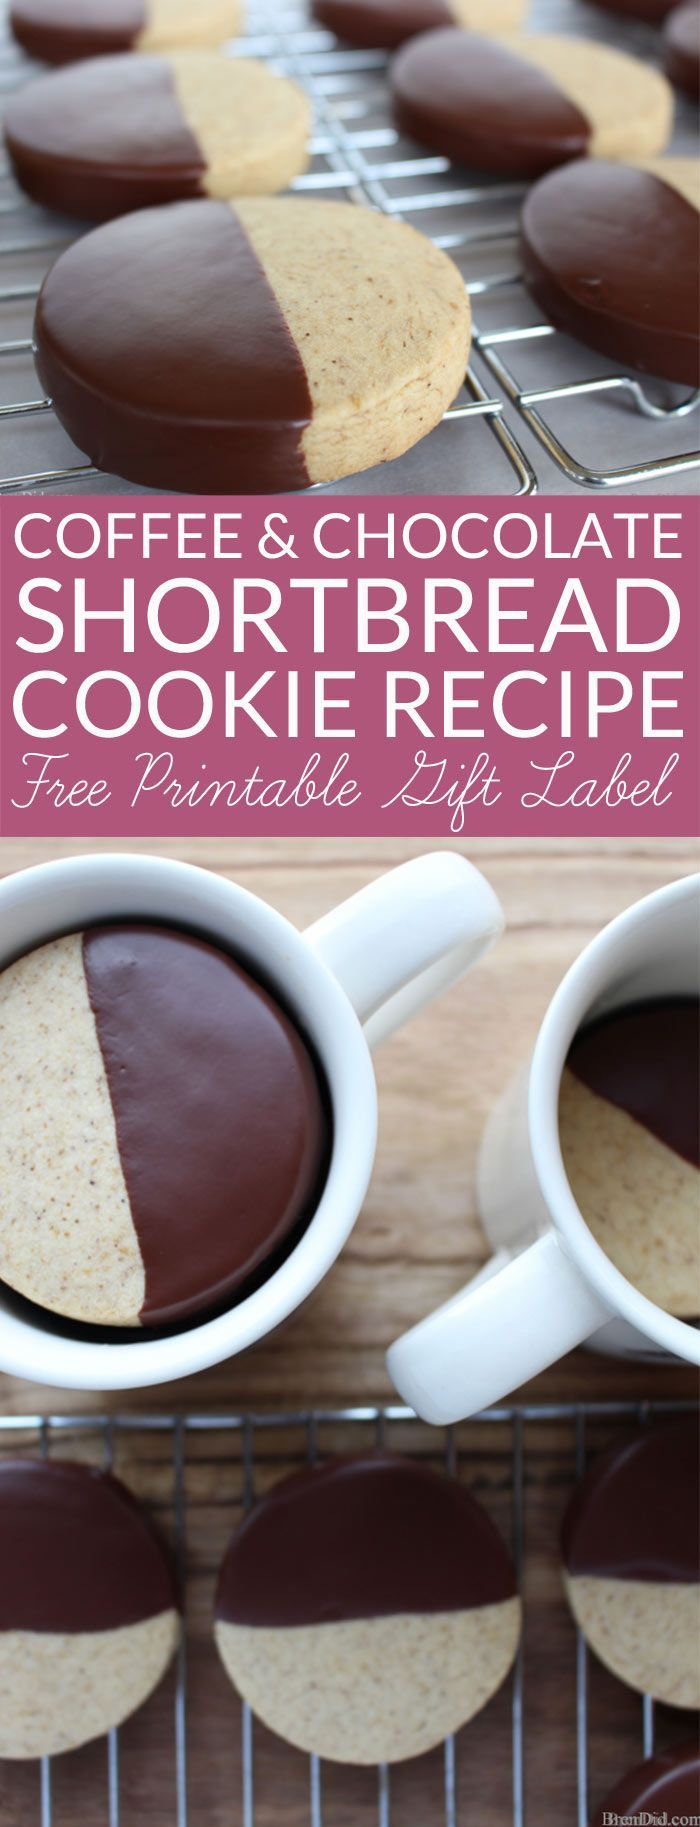 Coffee and Chocolate Shortbread Recipe, Simple chocolate dipped mocha shortbread...